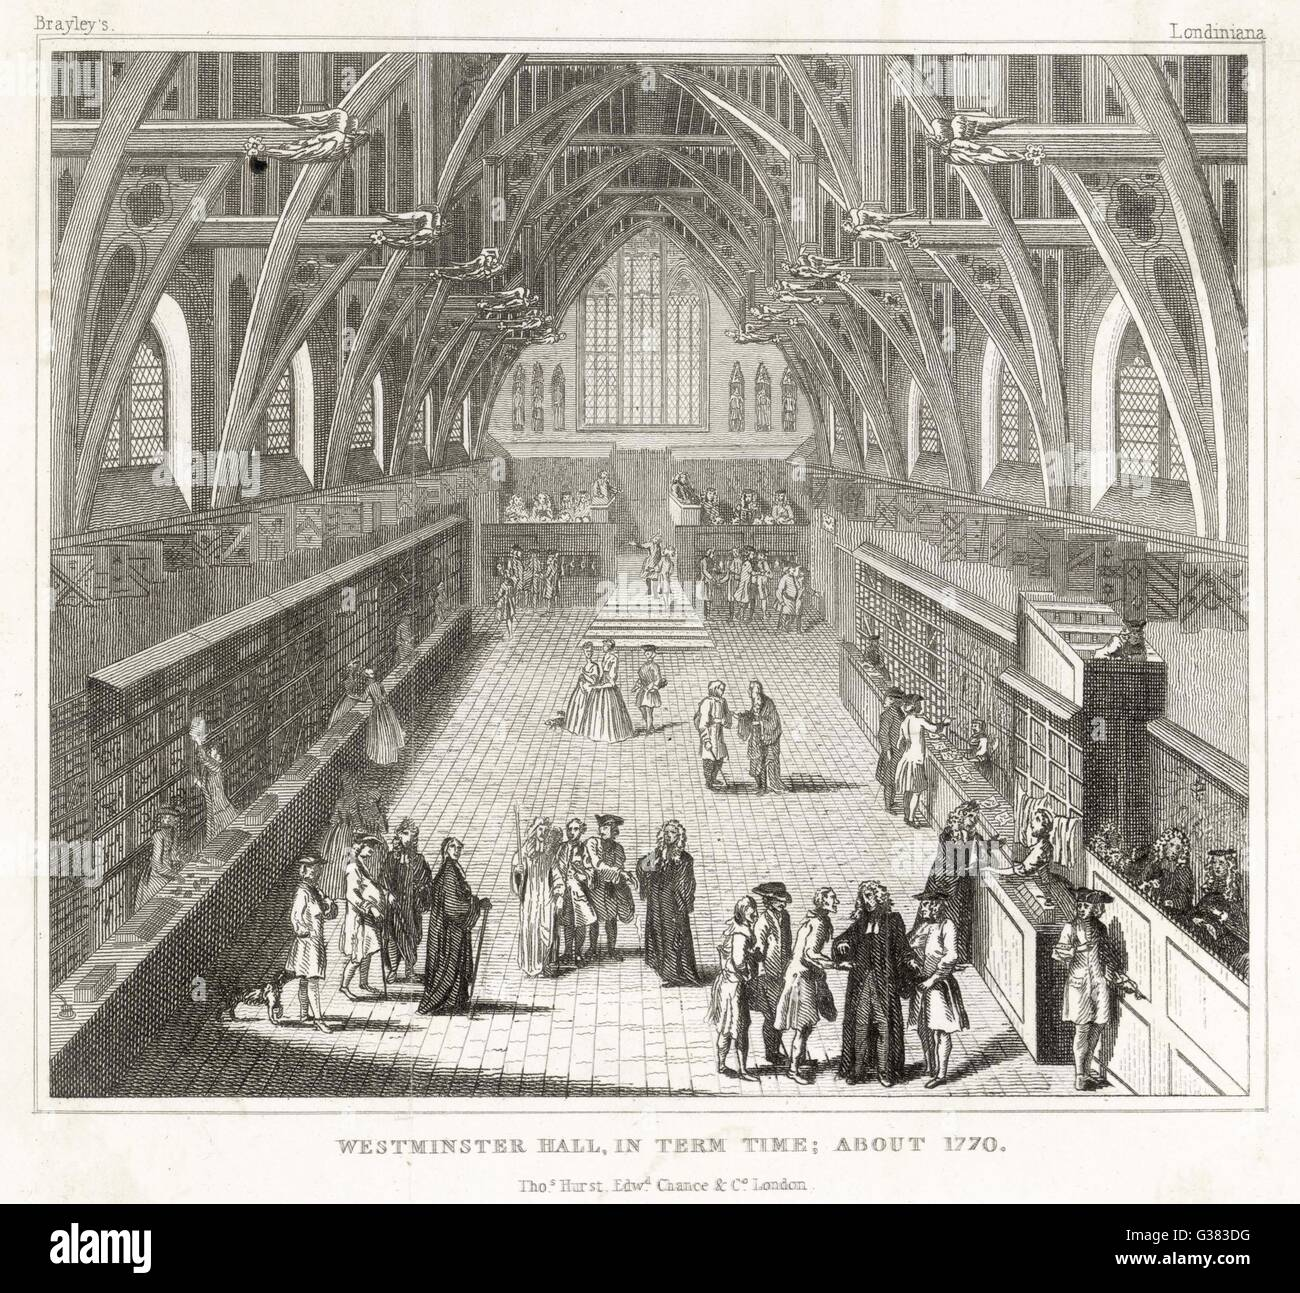 Westminster Hall in term time         Date: 1770 - Stock Image